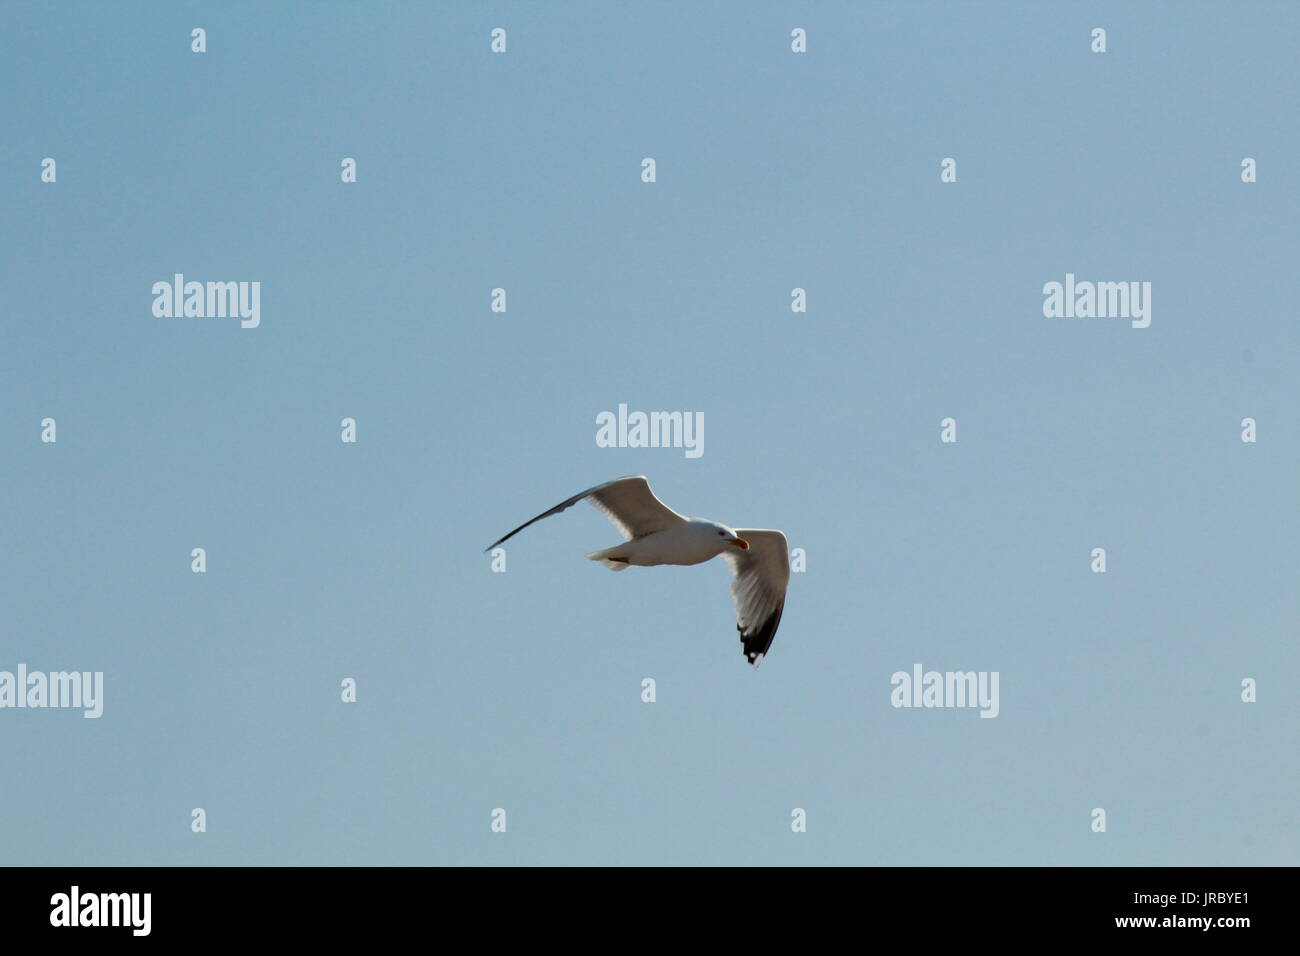 Seagull soaring through the clear blue sky - Stock Image